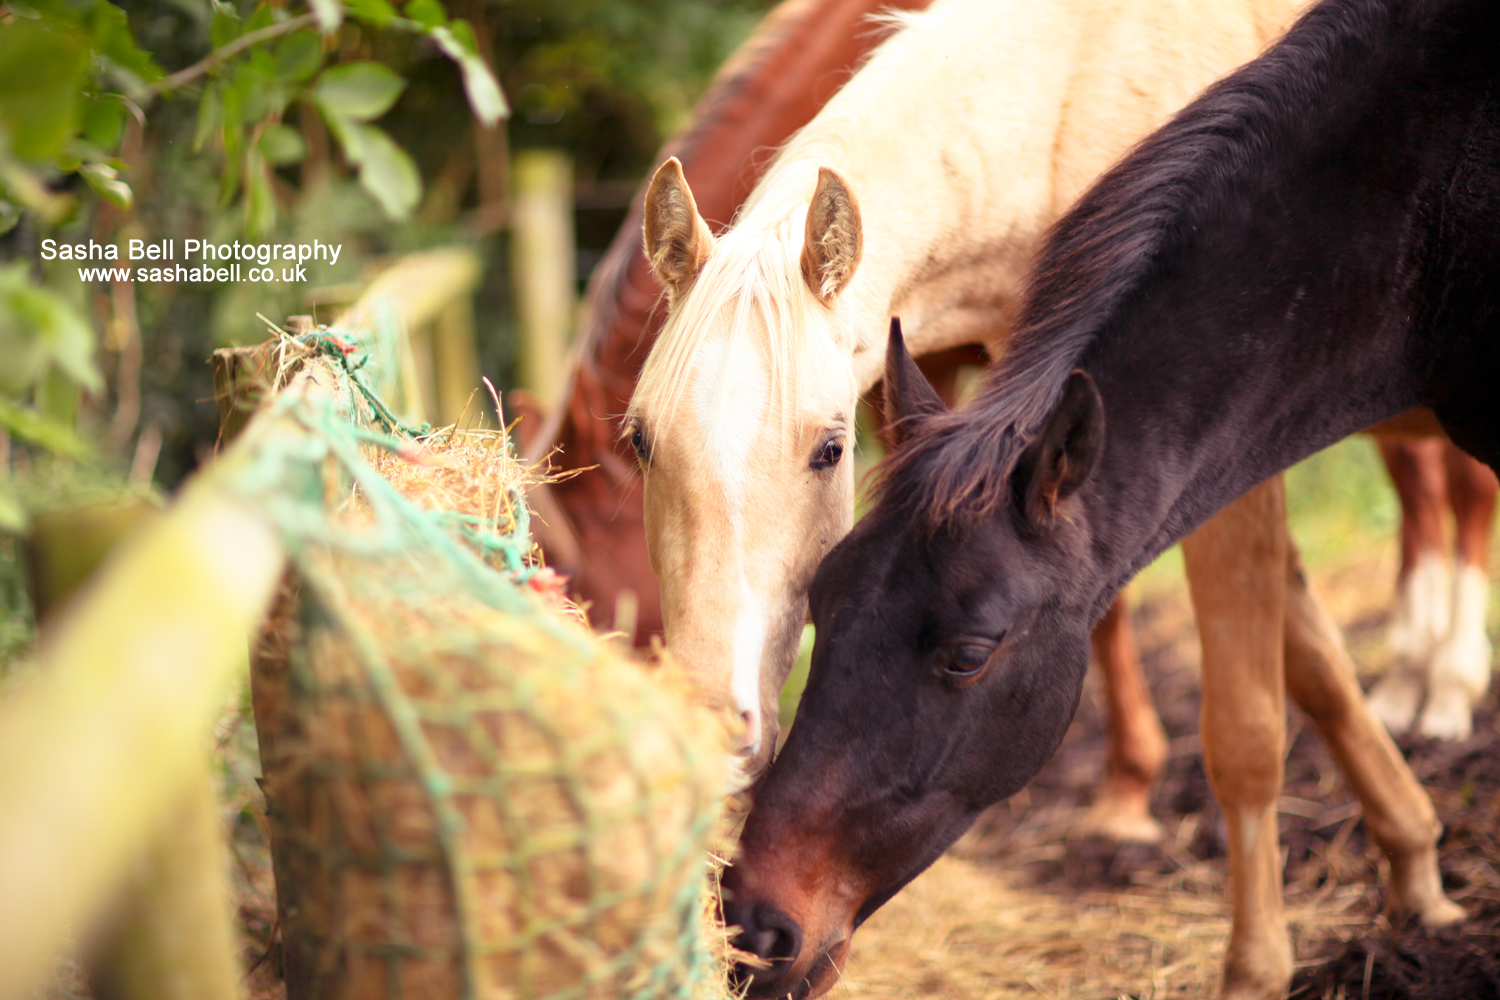 Horses Eating Hay – Day 27/365